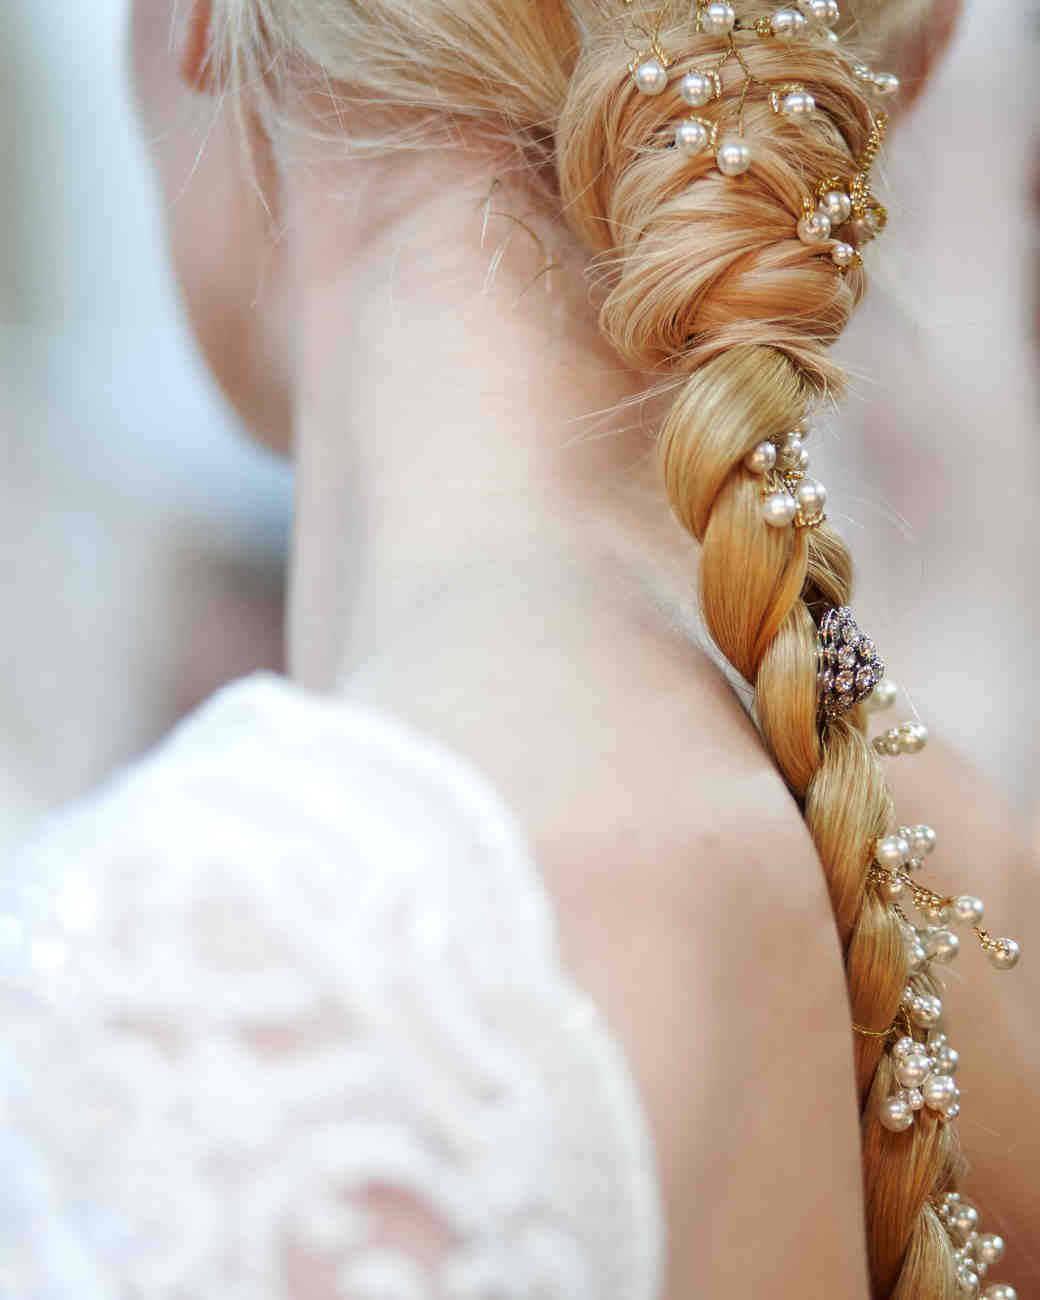 Wedding Styles: Wedding Hairstyles For Bows, Buds, Tiaras, And More From